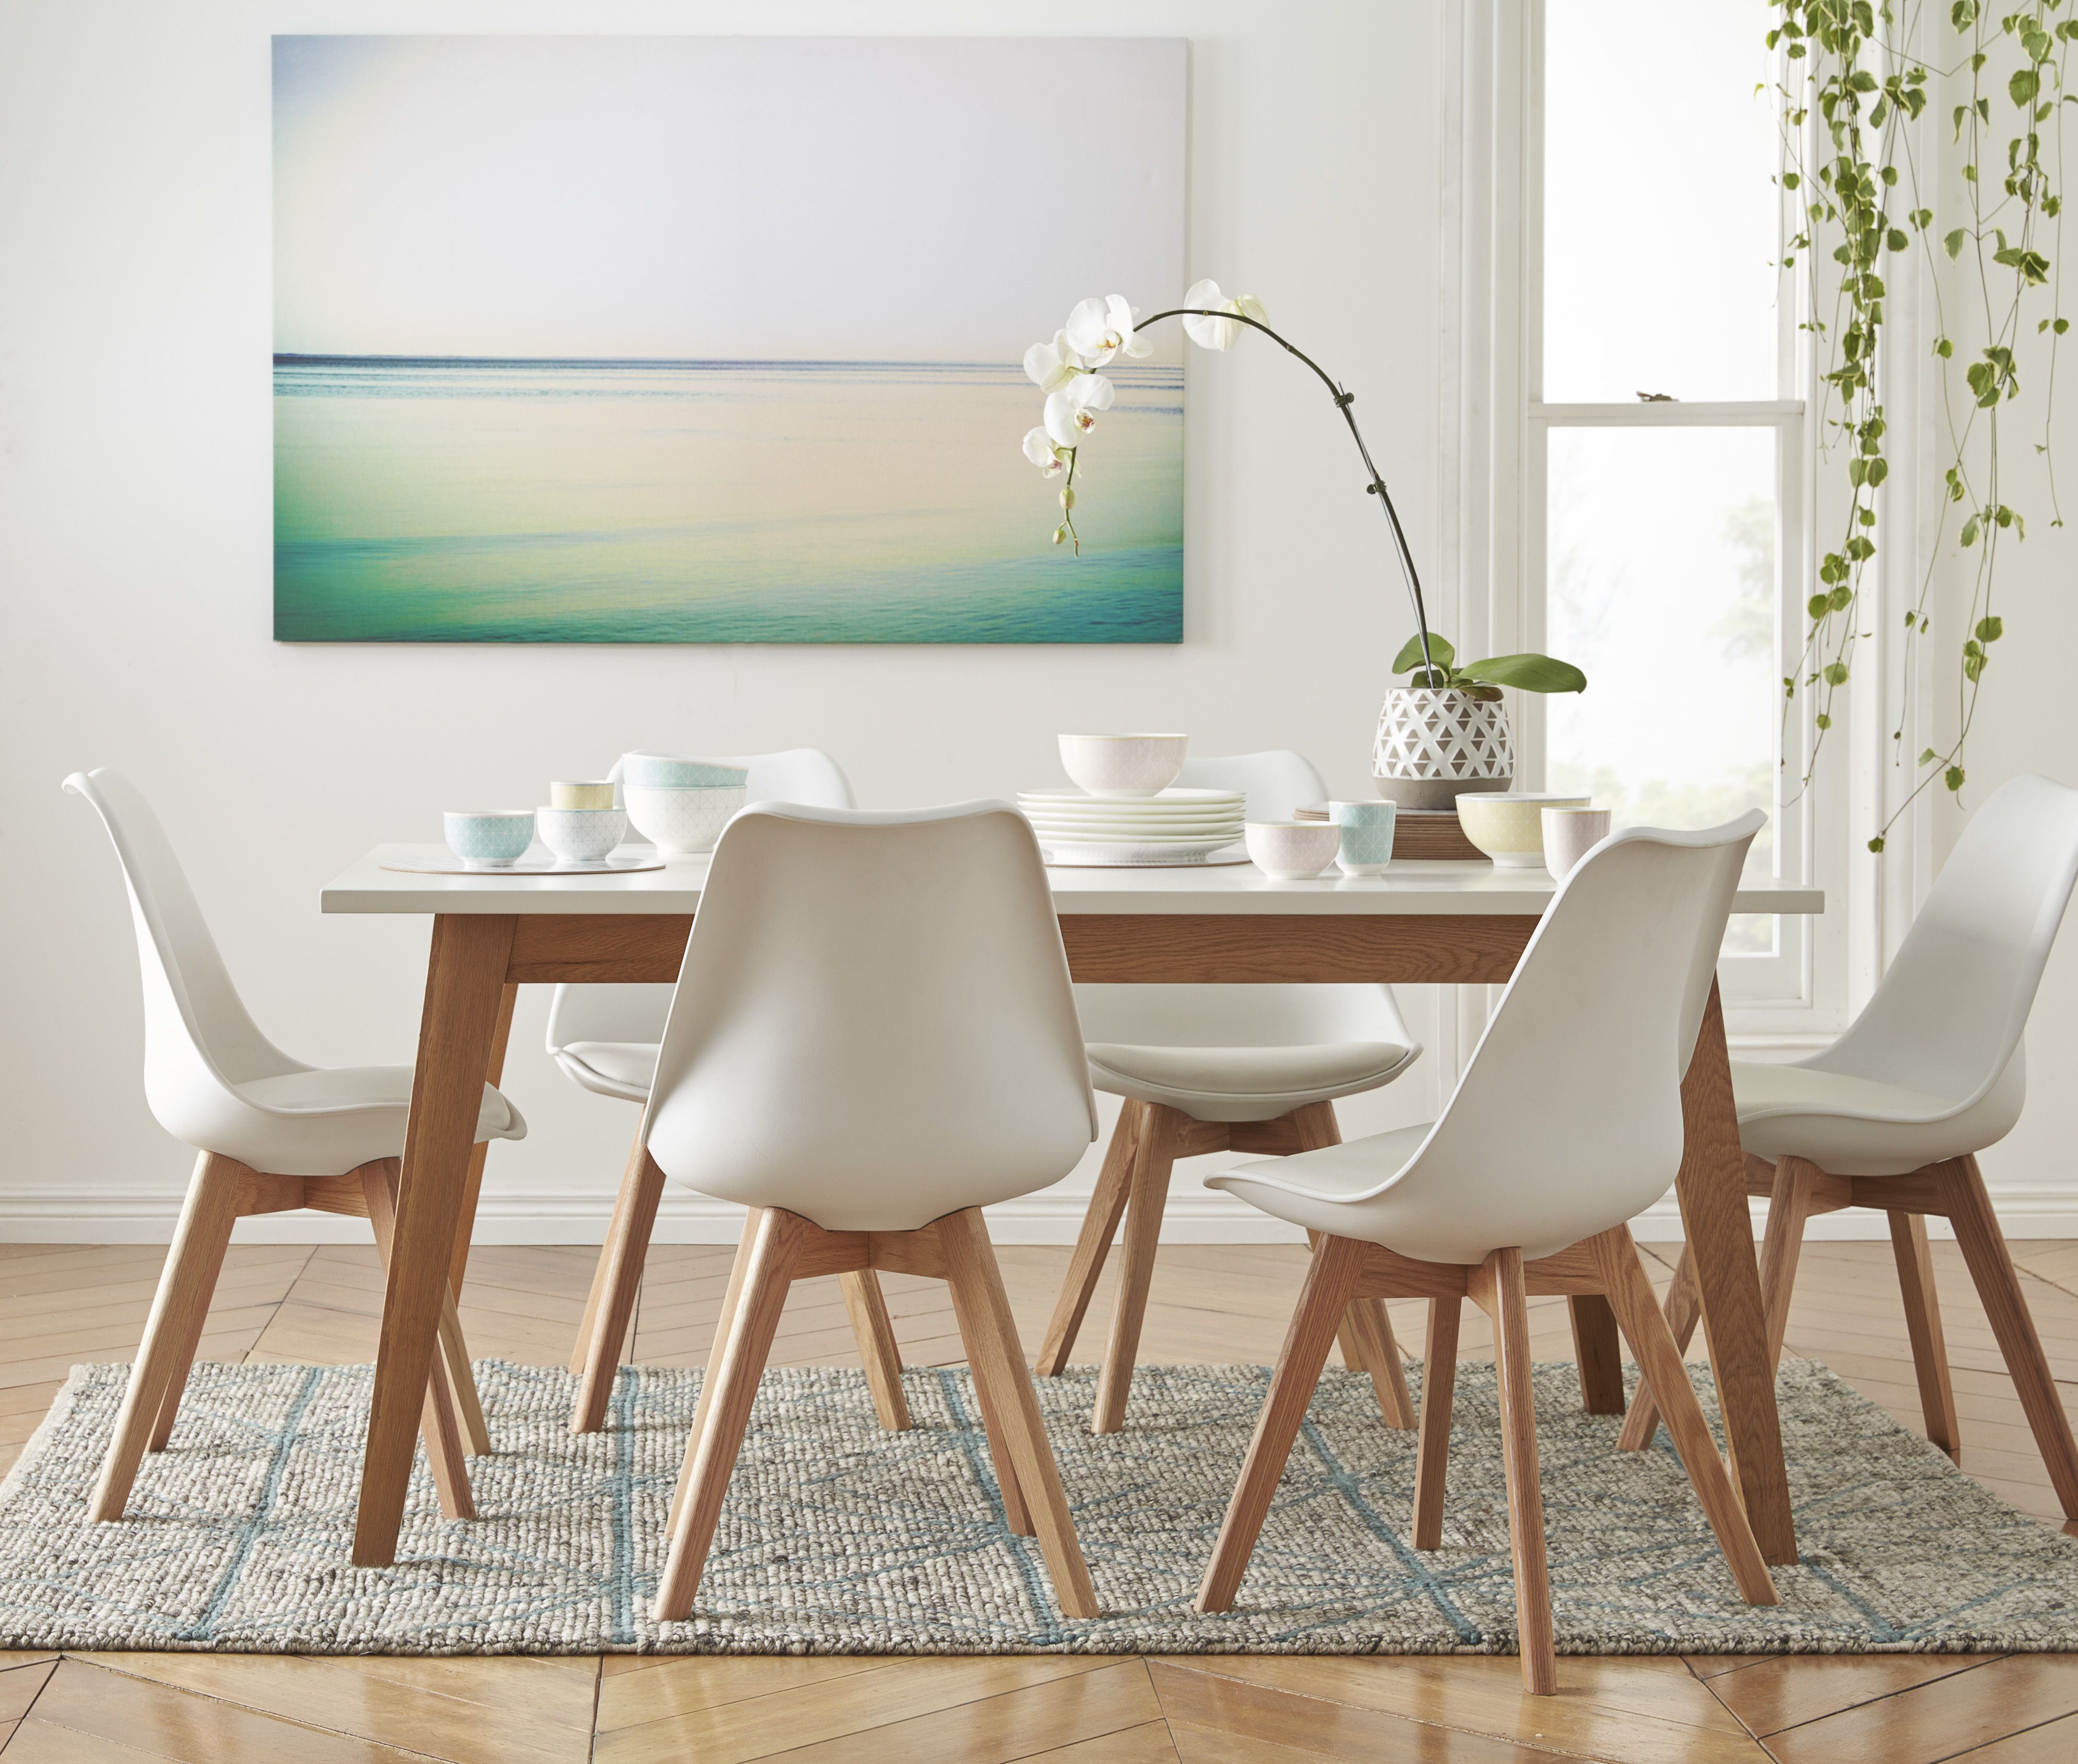 oak and white dining chairs play table for toddlers frieda 160x90cm in 699 freedomaw15 freedomaustralia